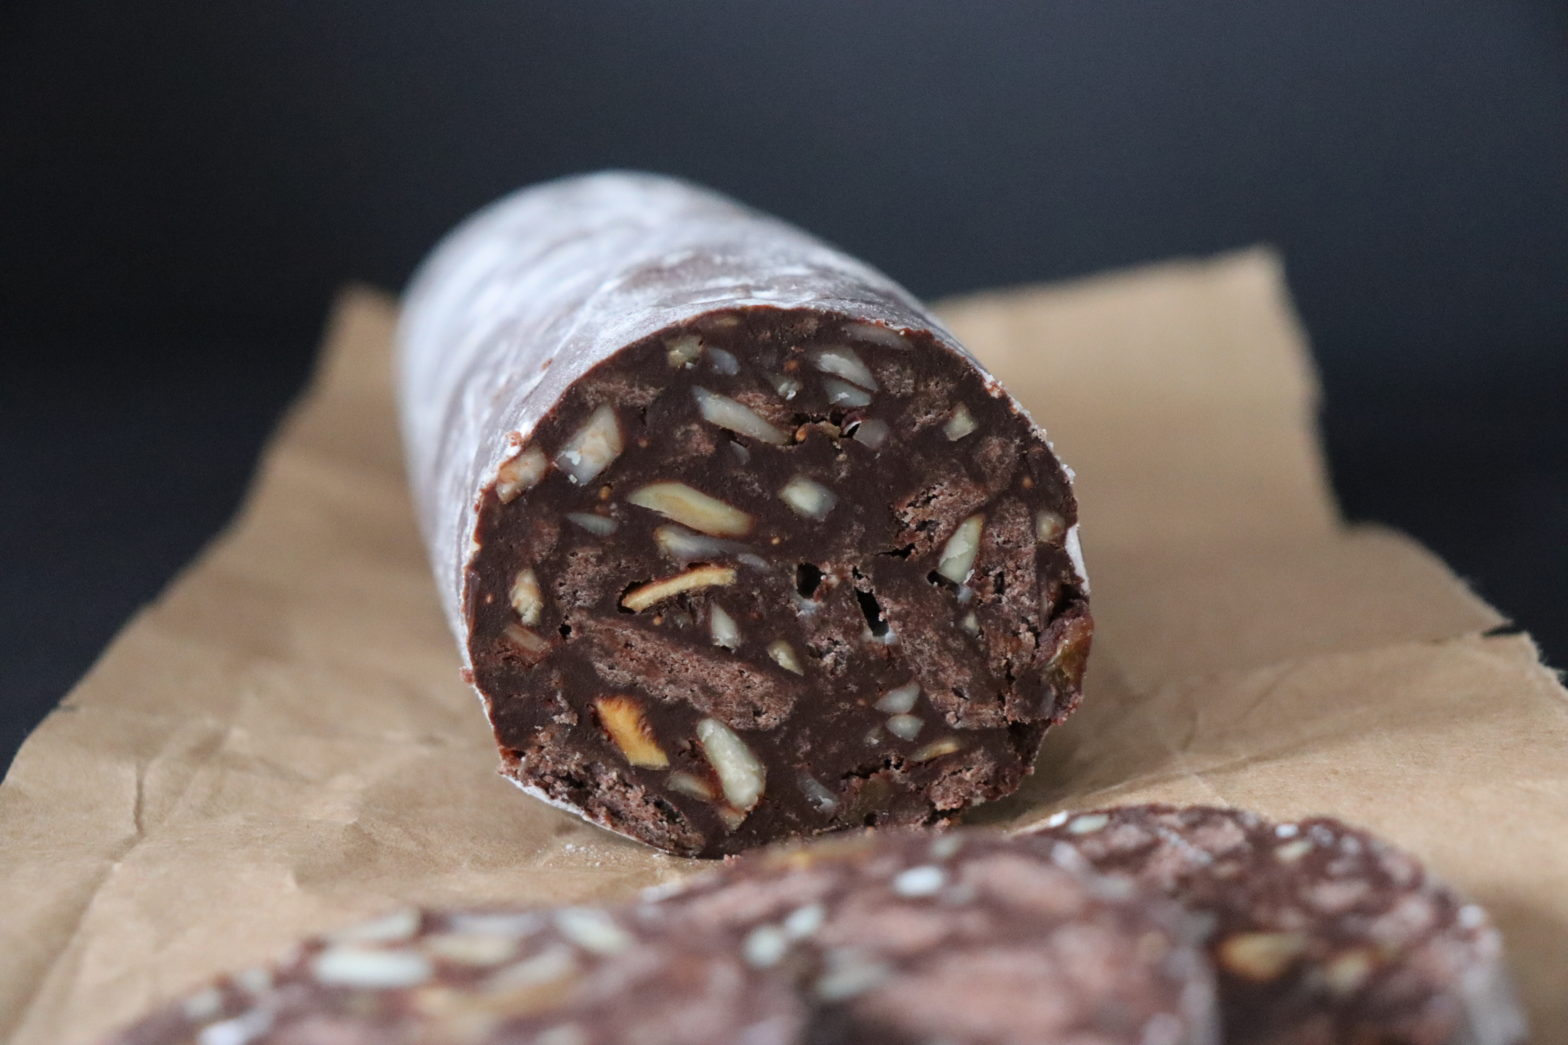 chocolade salami cuted in slices served on a wrapping paper